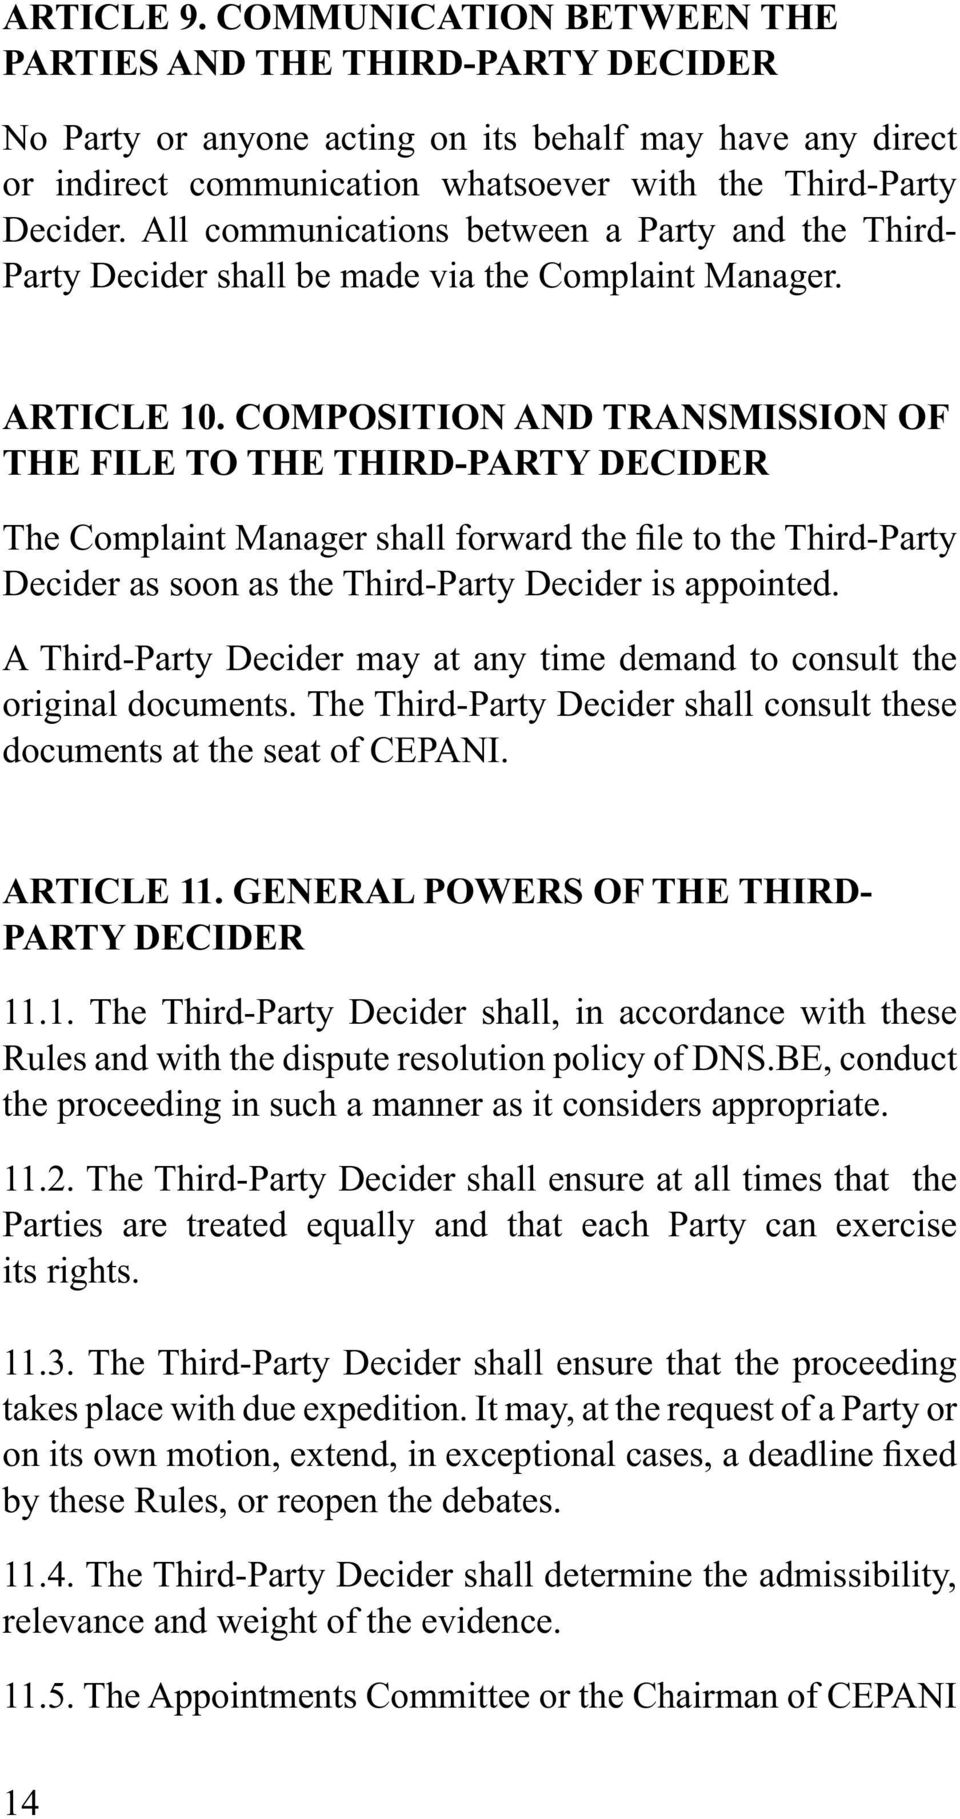 COMPOSITION AND TRANSMISSION OF THE FILE TO THE THIRD-PARTY DECIDER Decider as soon as the Third-Party Decider is appointed.